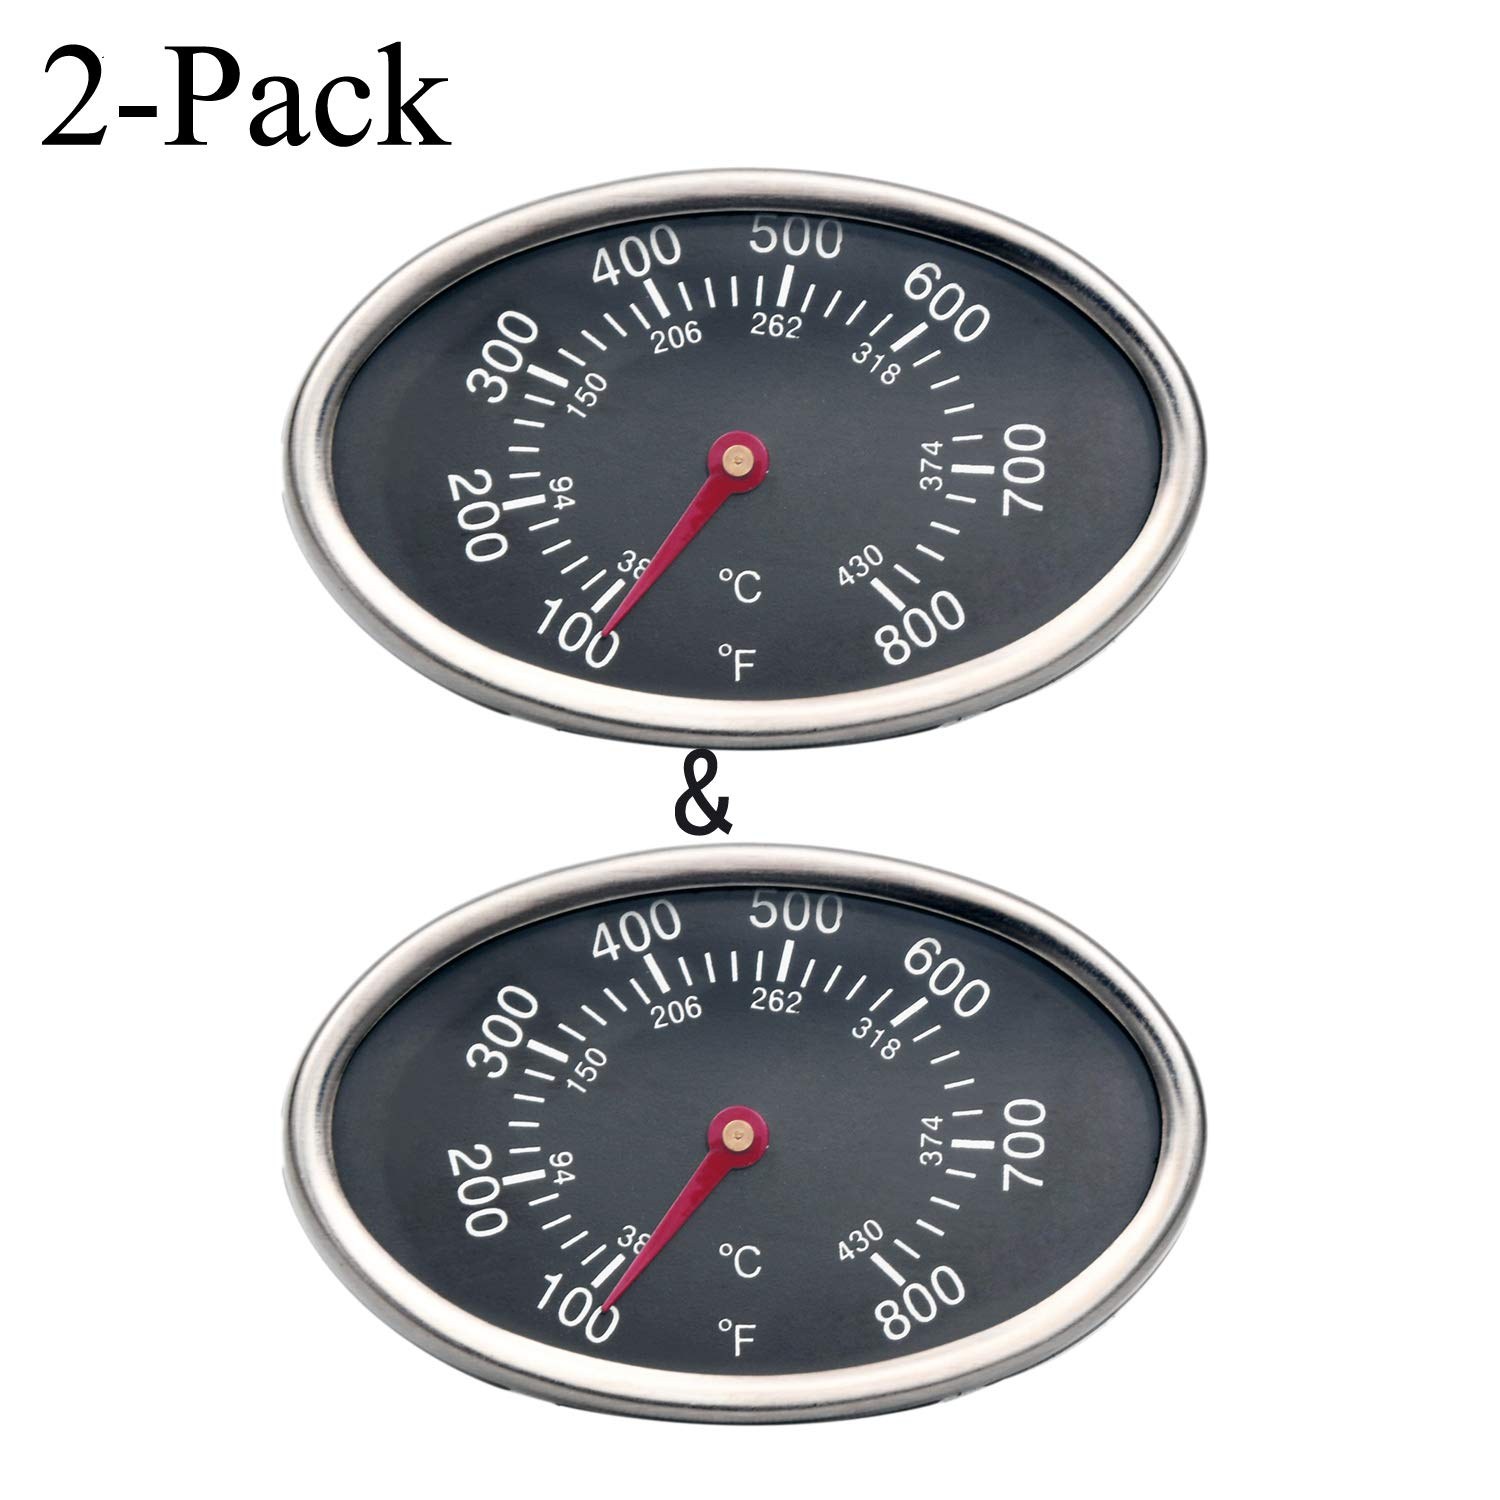 GasSaf 3 inch GP551 Heat Indicator Stainless Steel Lid Thermometer Temperature Gauge Replacement for Grill Master 720-0697 4 Burner Set of 2-Pack Aussie Brinkman and Others